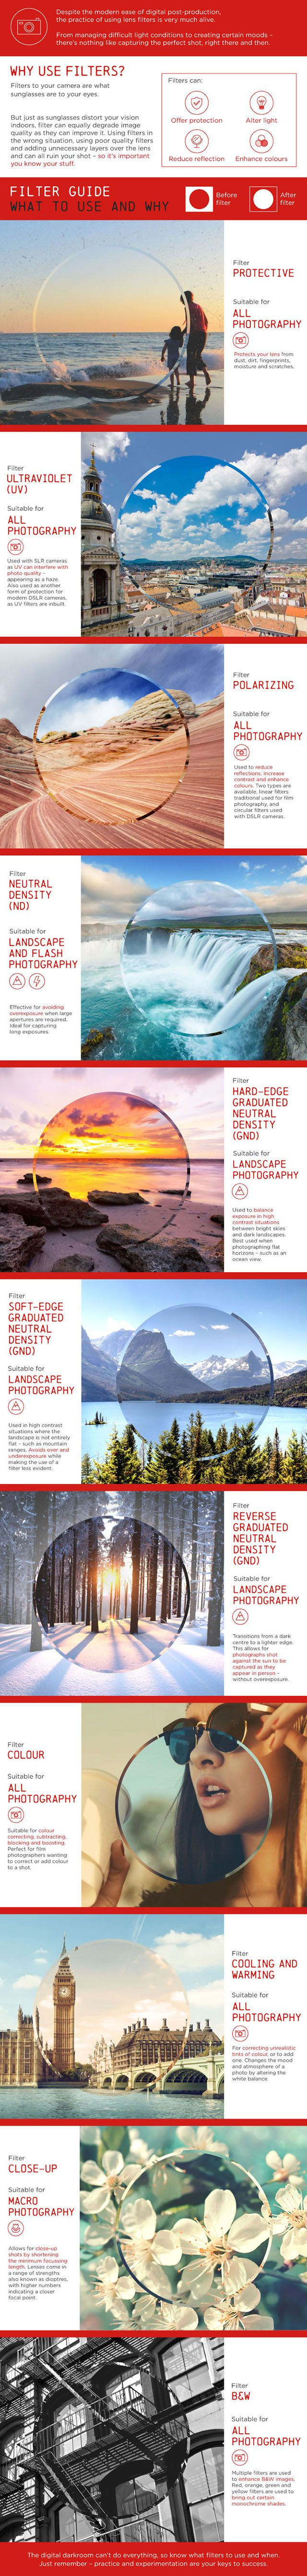 A Simple Photography Lens Filter Cheat Sheet -Design Bump